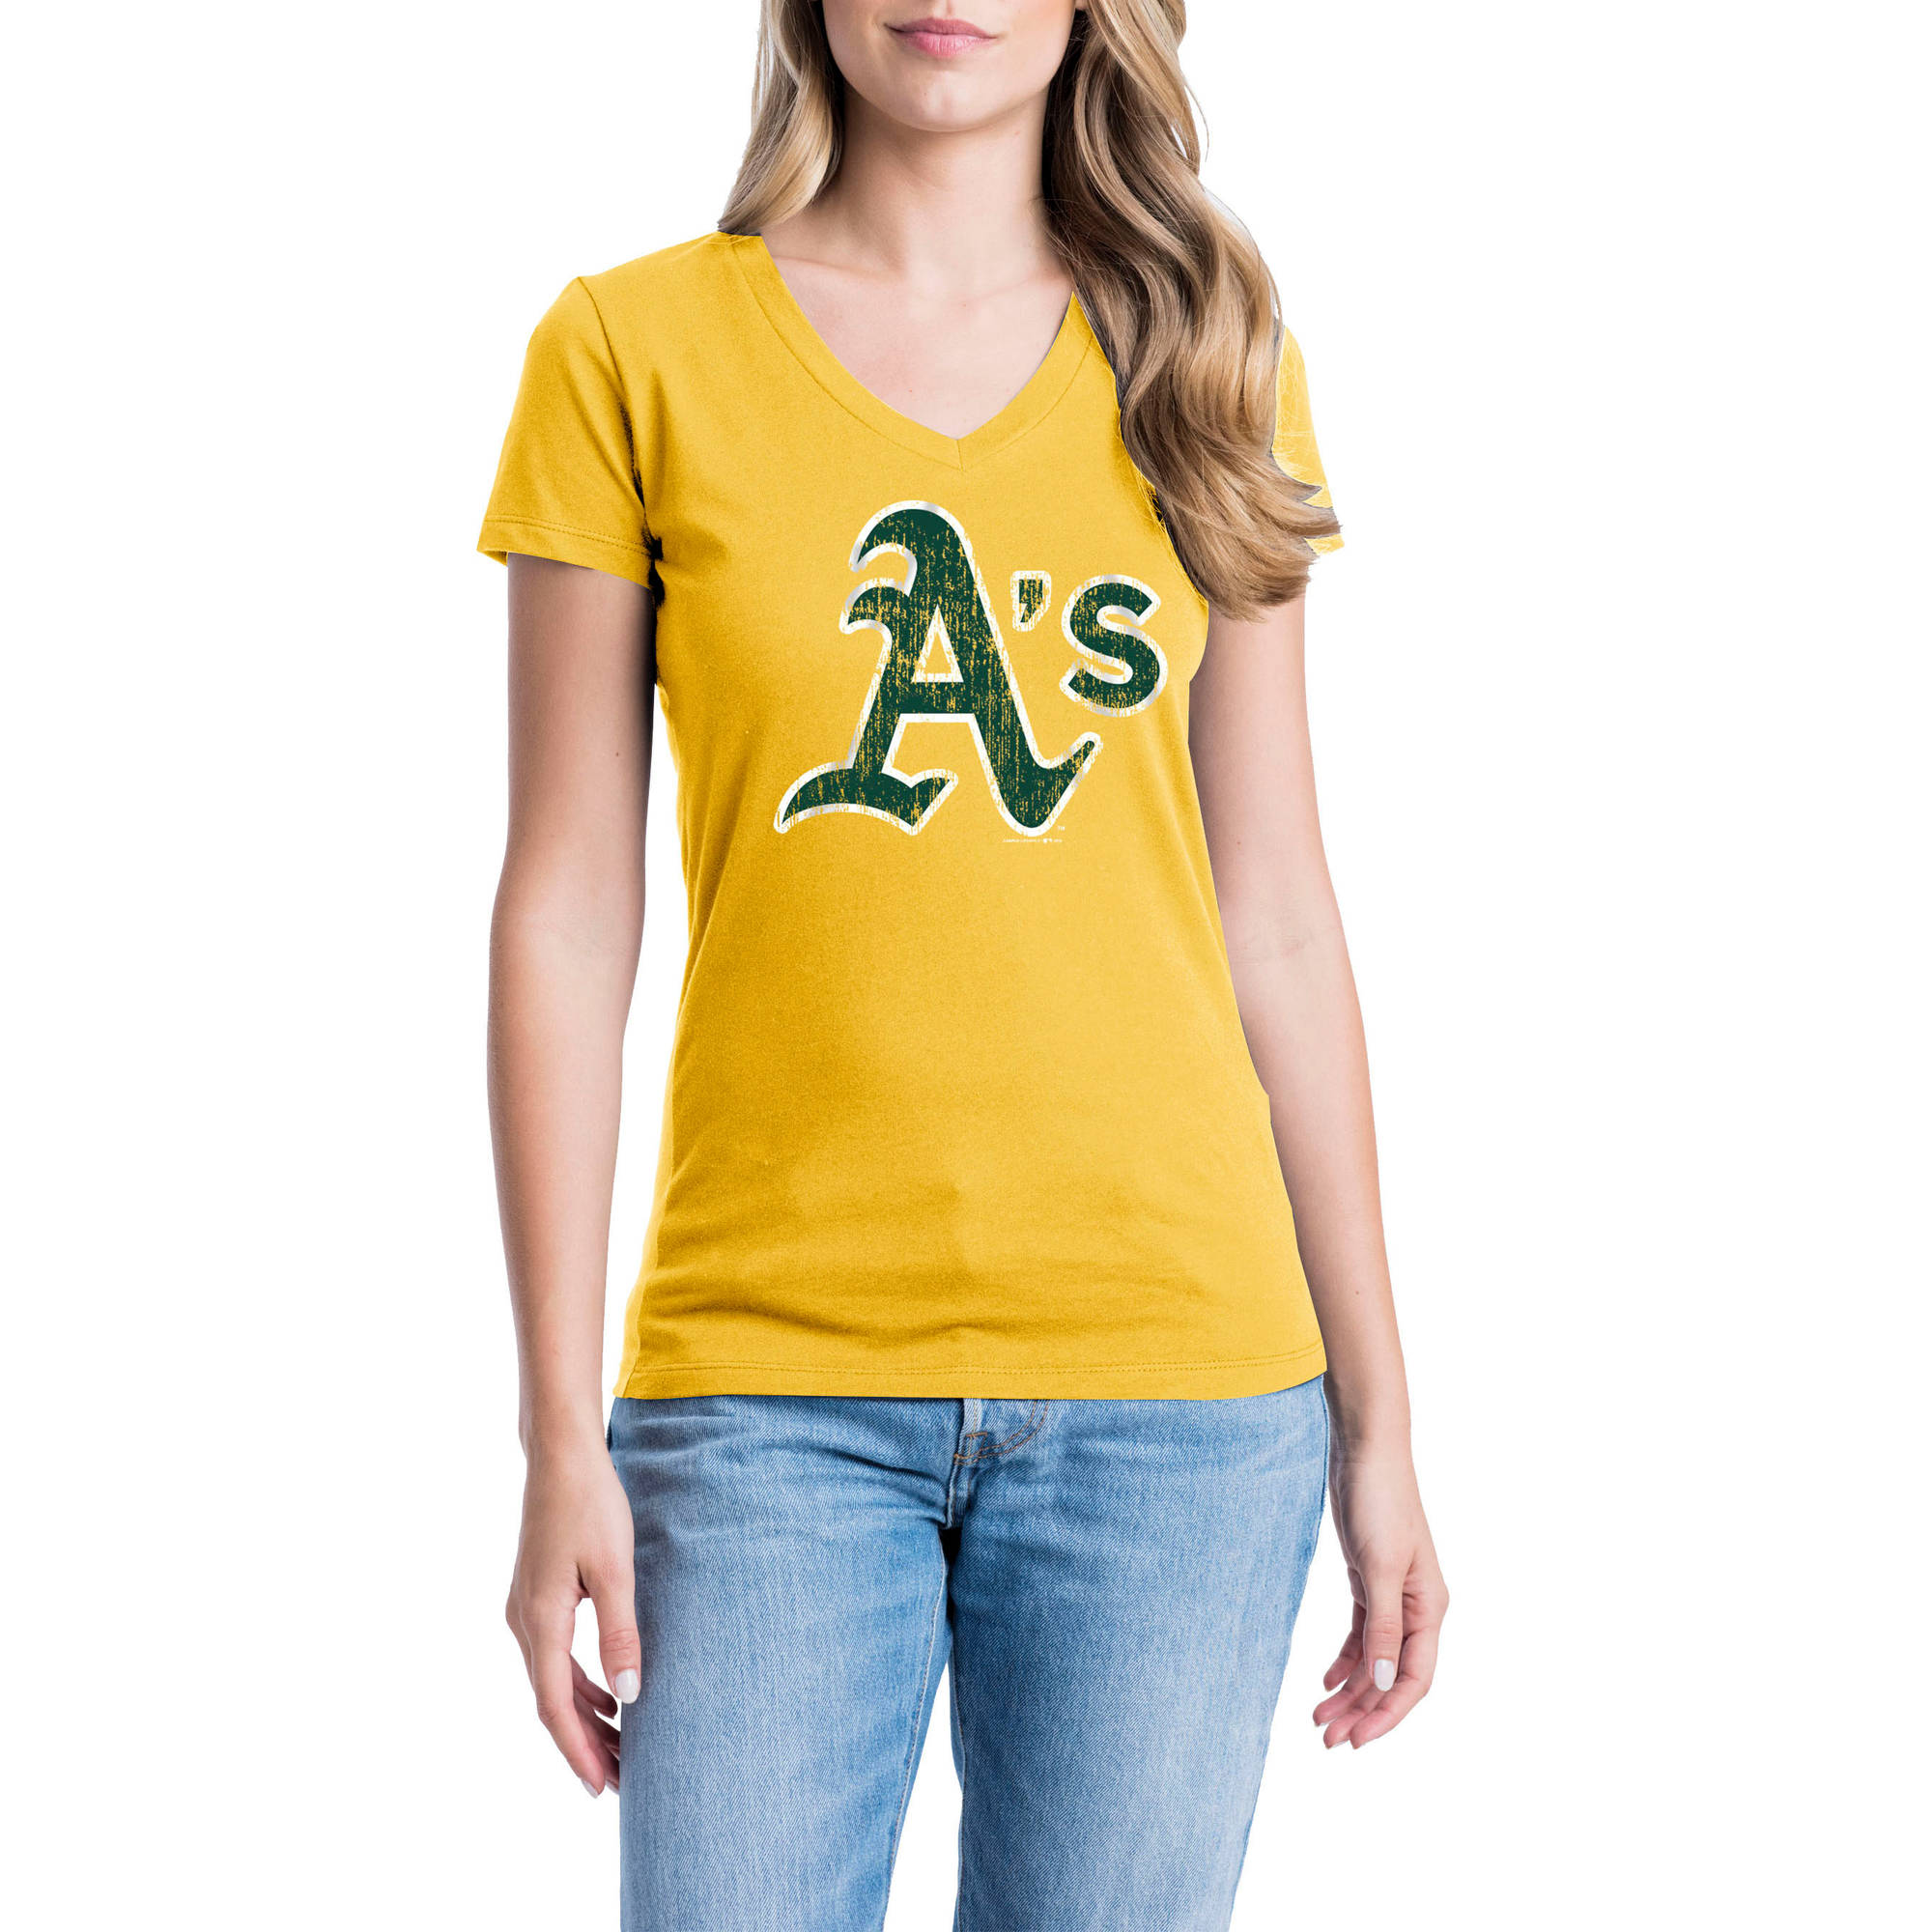 Oakland Athletics Womens Short Sleeve Graphic Tee